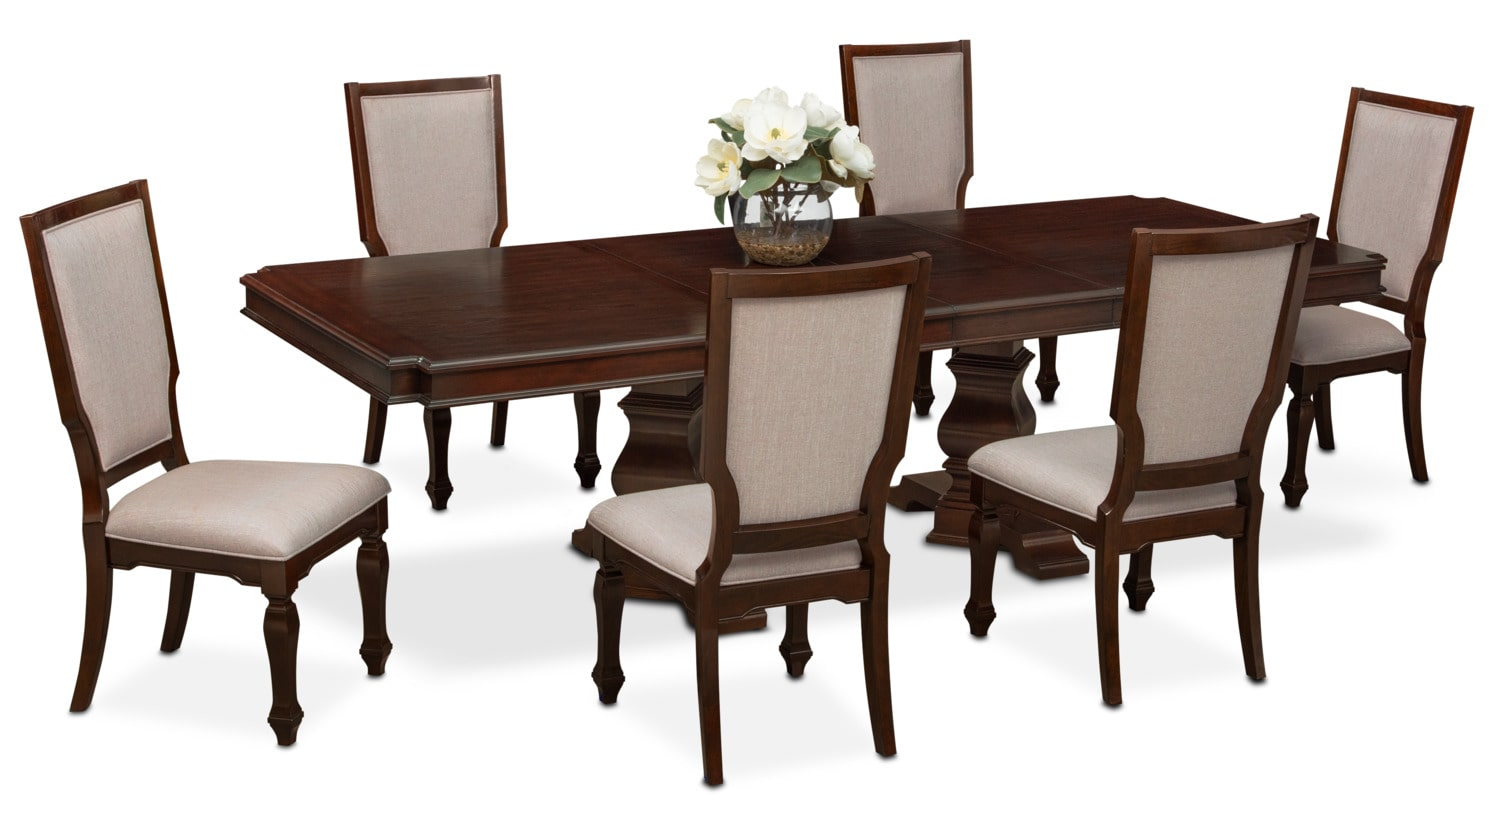 Dining Side Chairs Vienna Dining Table And 6 Upholstered Side Chairs Merlot